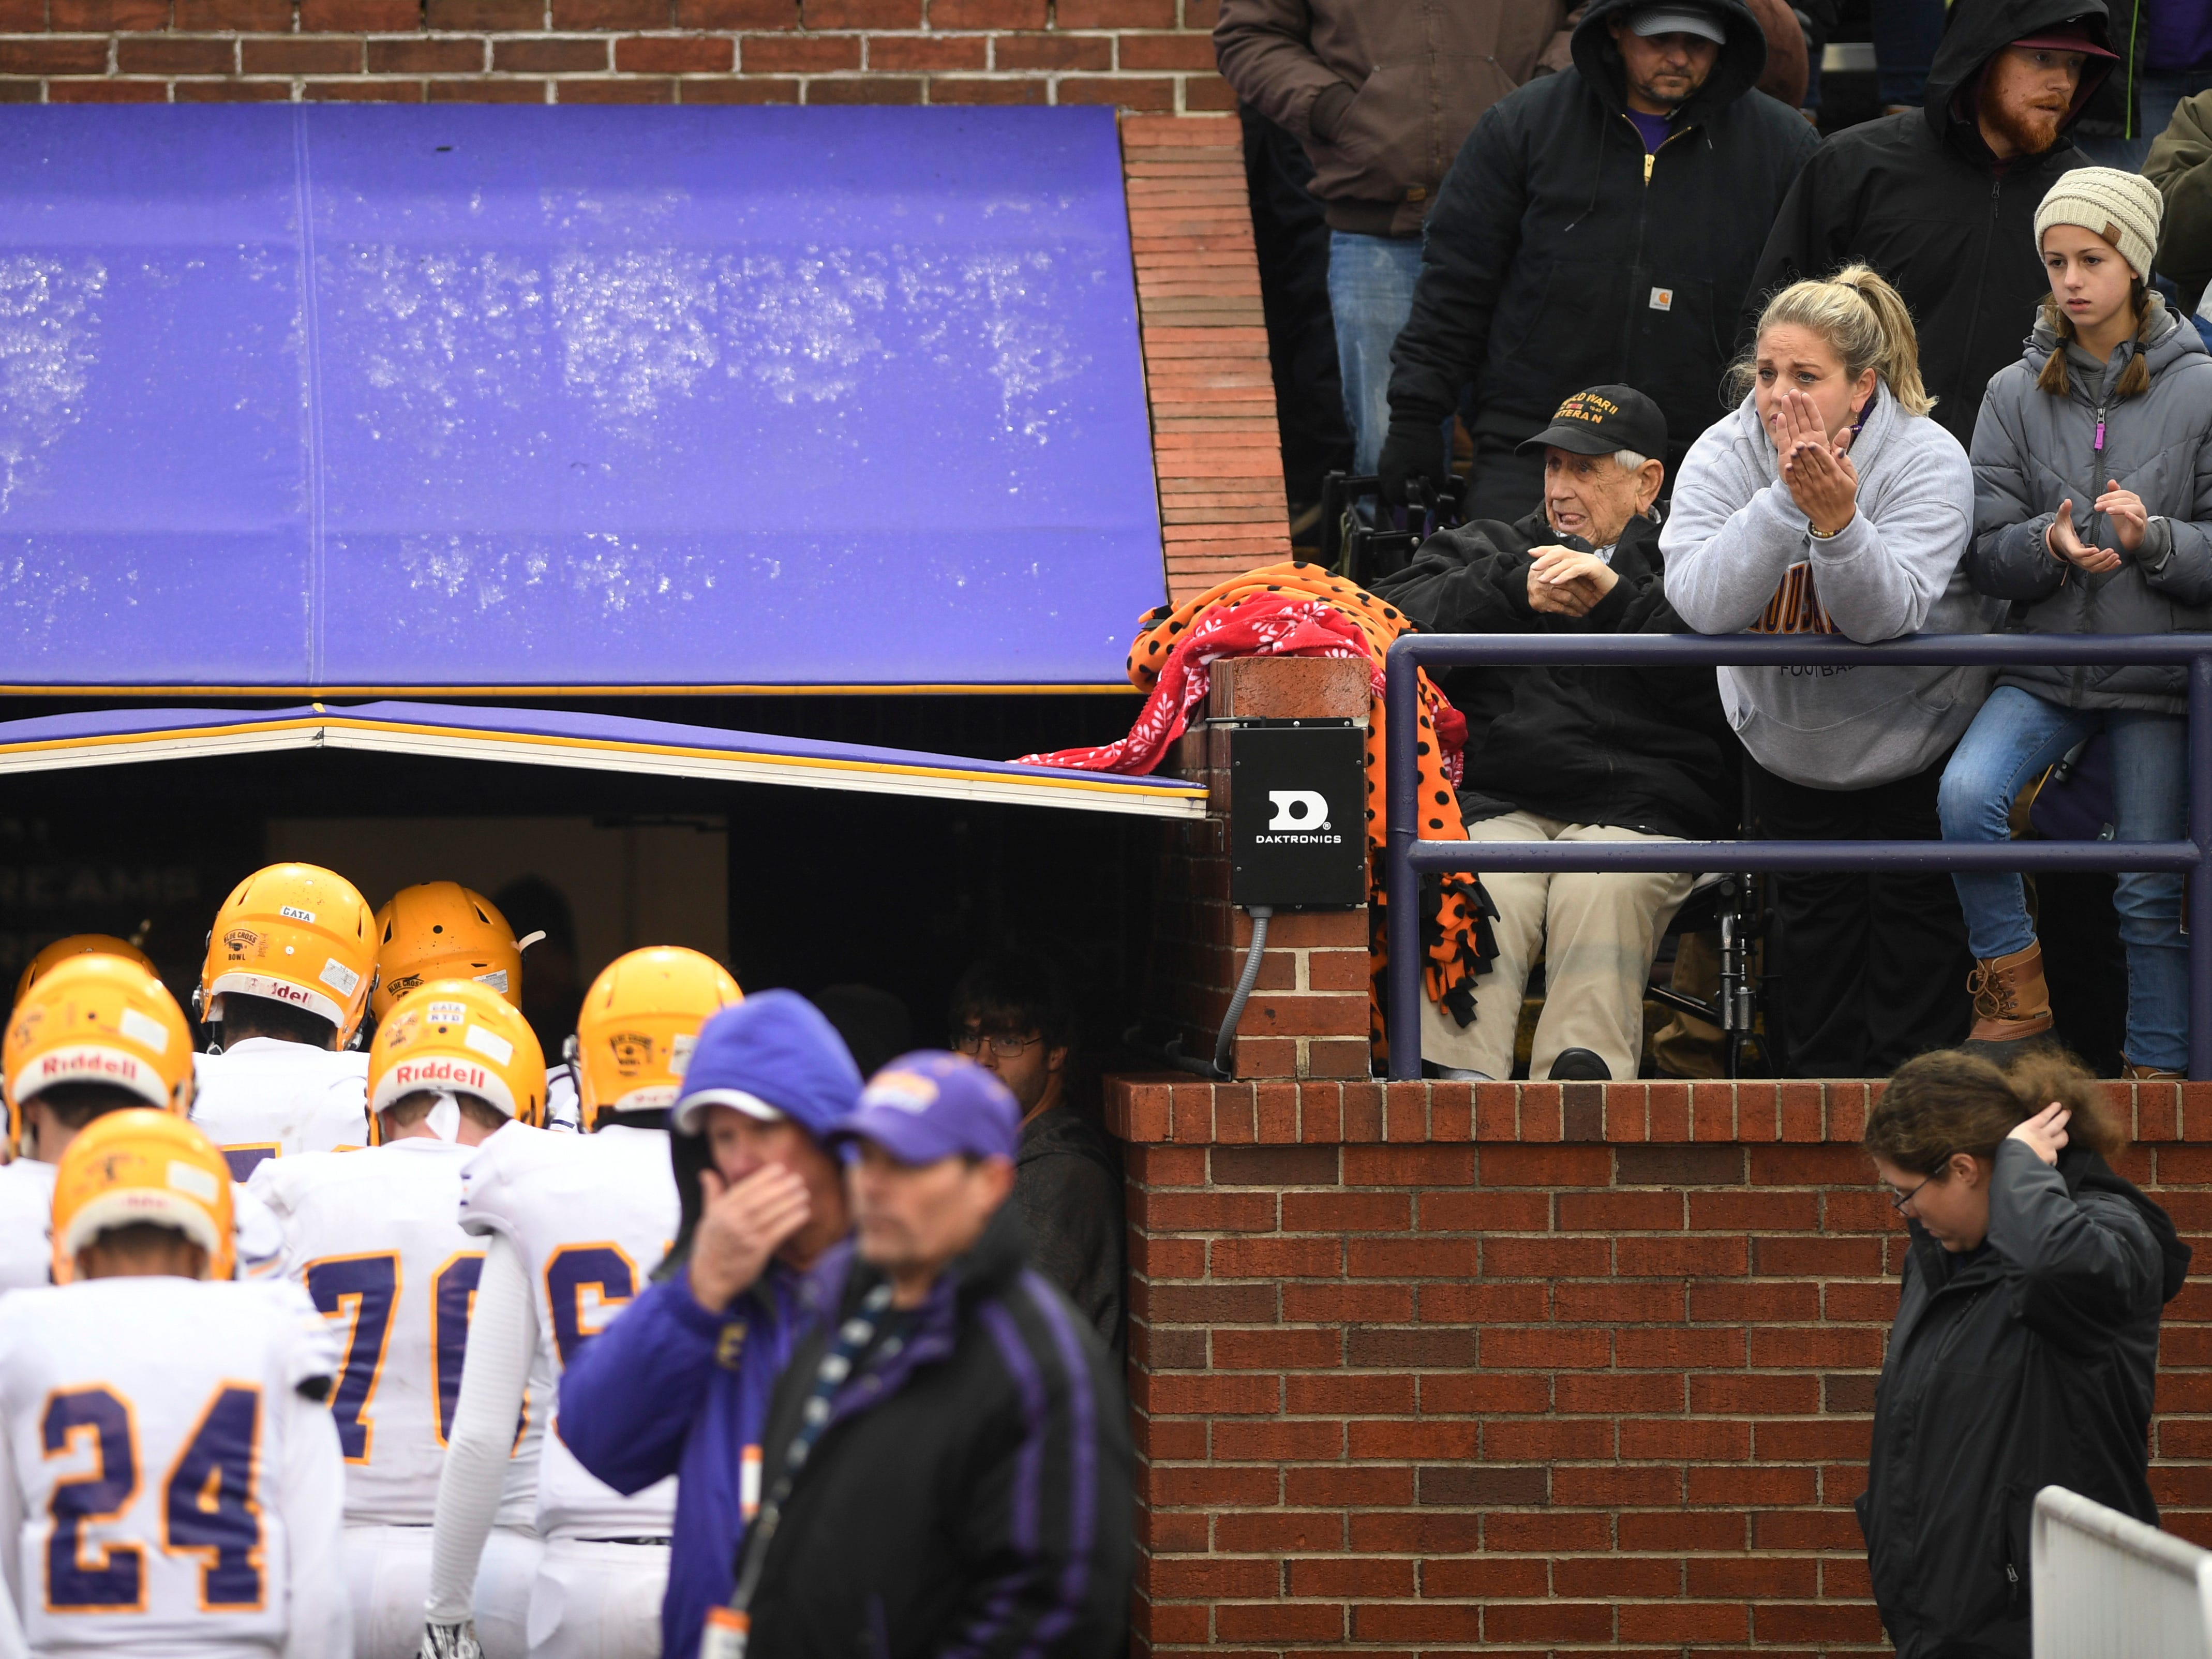 Trousdale fans applaud the team after the Class 2A BlueCross Bowl state championship at Tennessee Tech's Tucker Stadium in Cookeville, Tenn., on Thursday, Nov. 29, 2018.